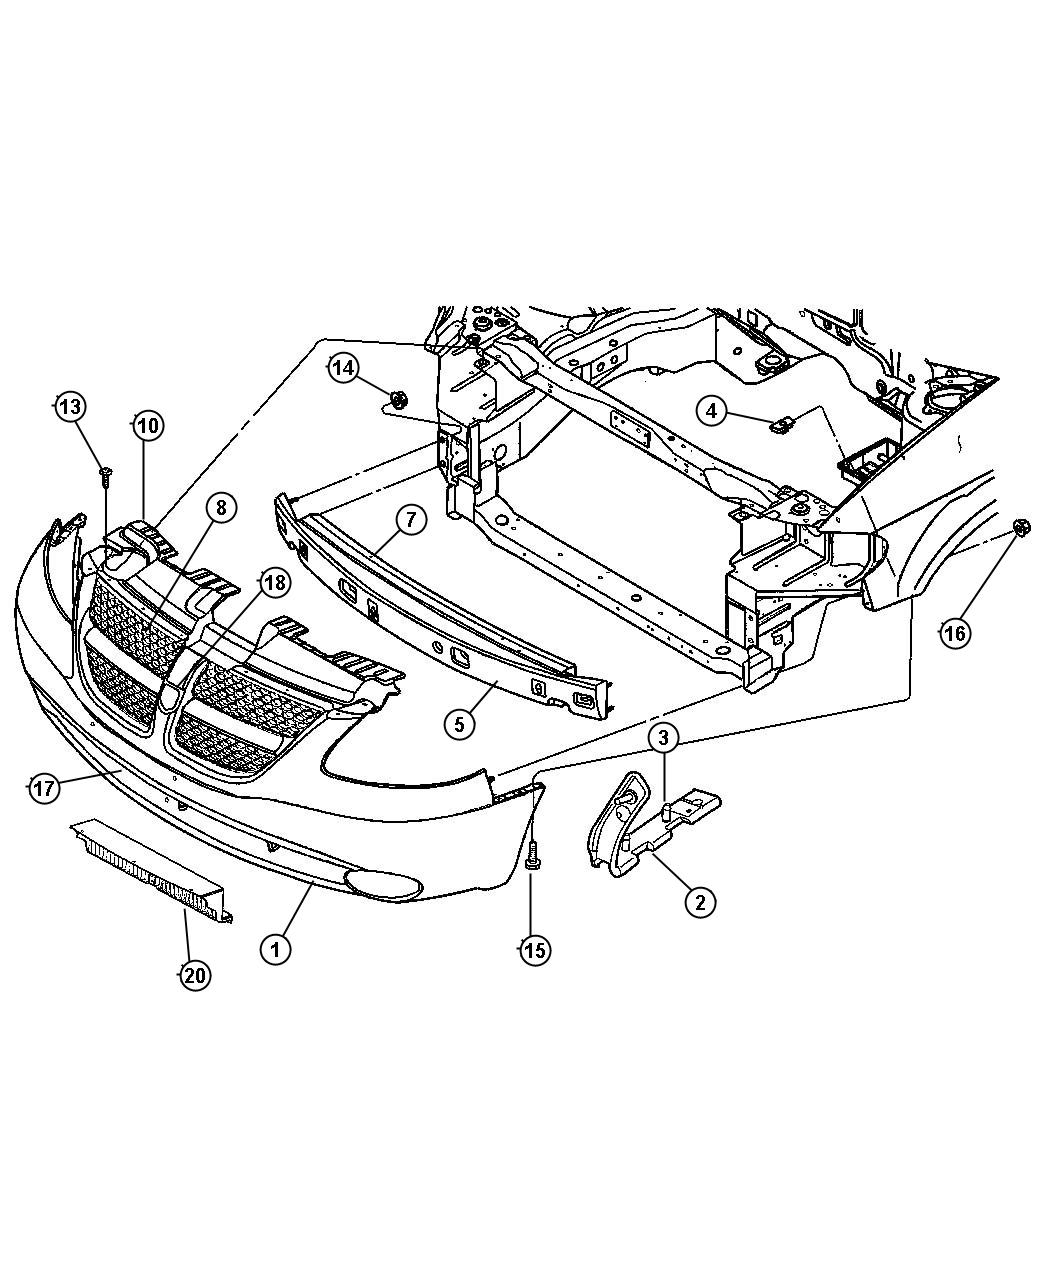 Funny Wiring Diagrams further Car Fascia Diagram additionally Chevrolet Cruze Engine Diagram moreover Fuel Cell Sending Unit Wiring Diagram besides Ford F 350 4x4 Front Axle Schematic. on chevy speaker wiring diagram